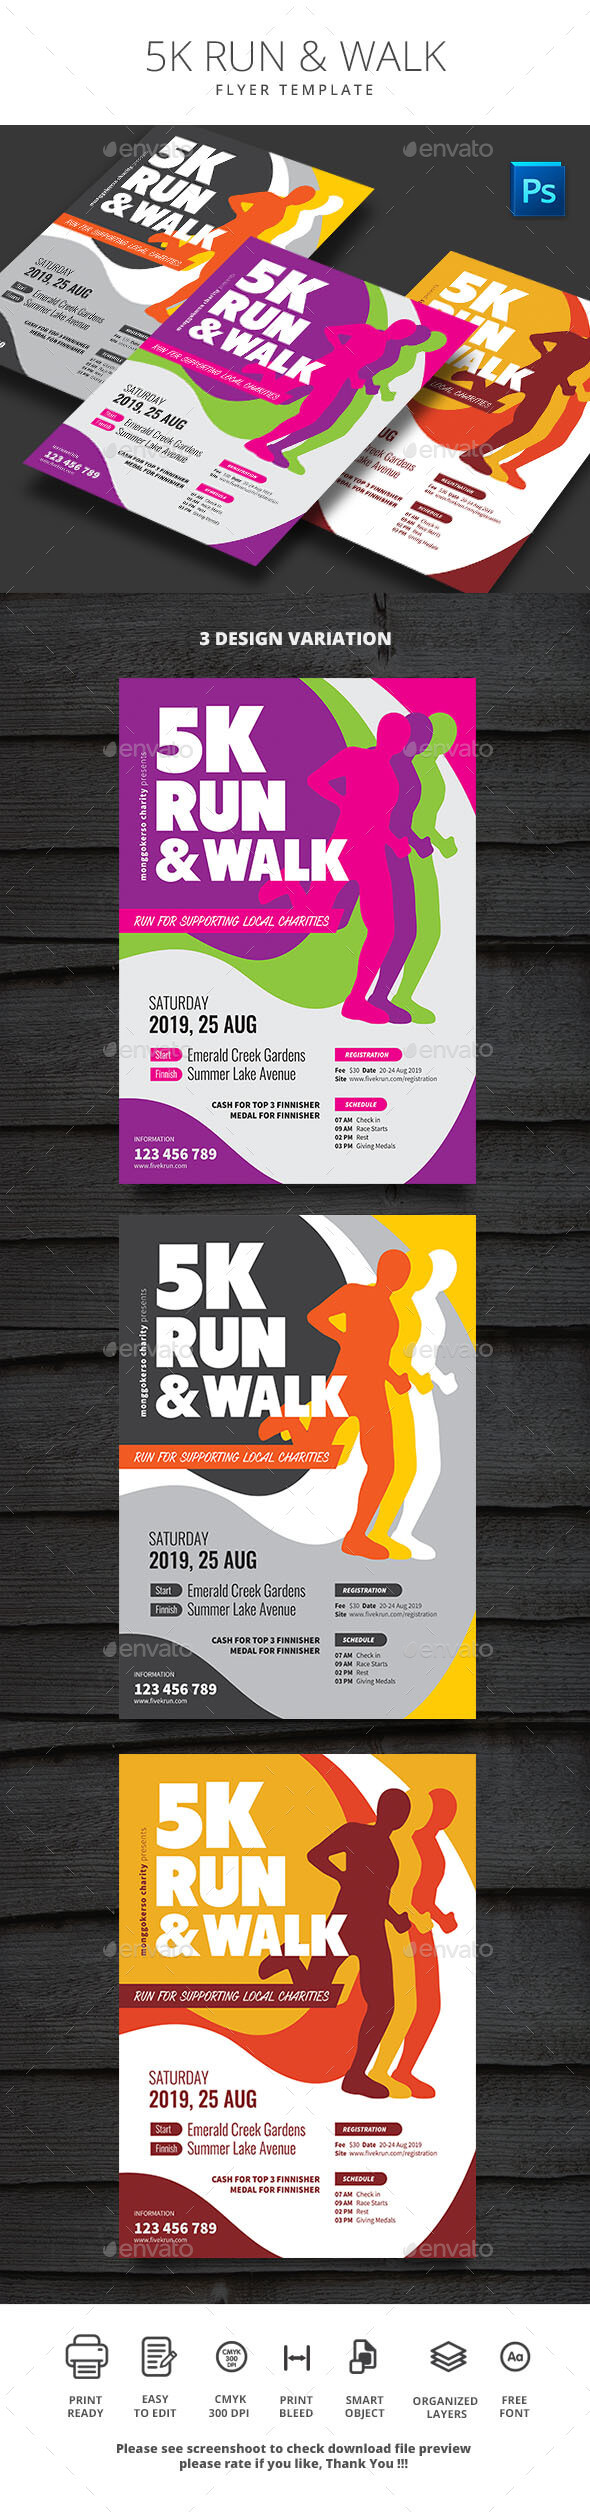 5K Run Graphics, Designs & Templates From Graphicriver With 5K Flyer Template